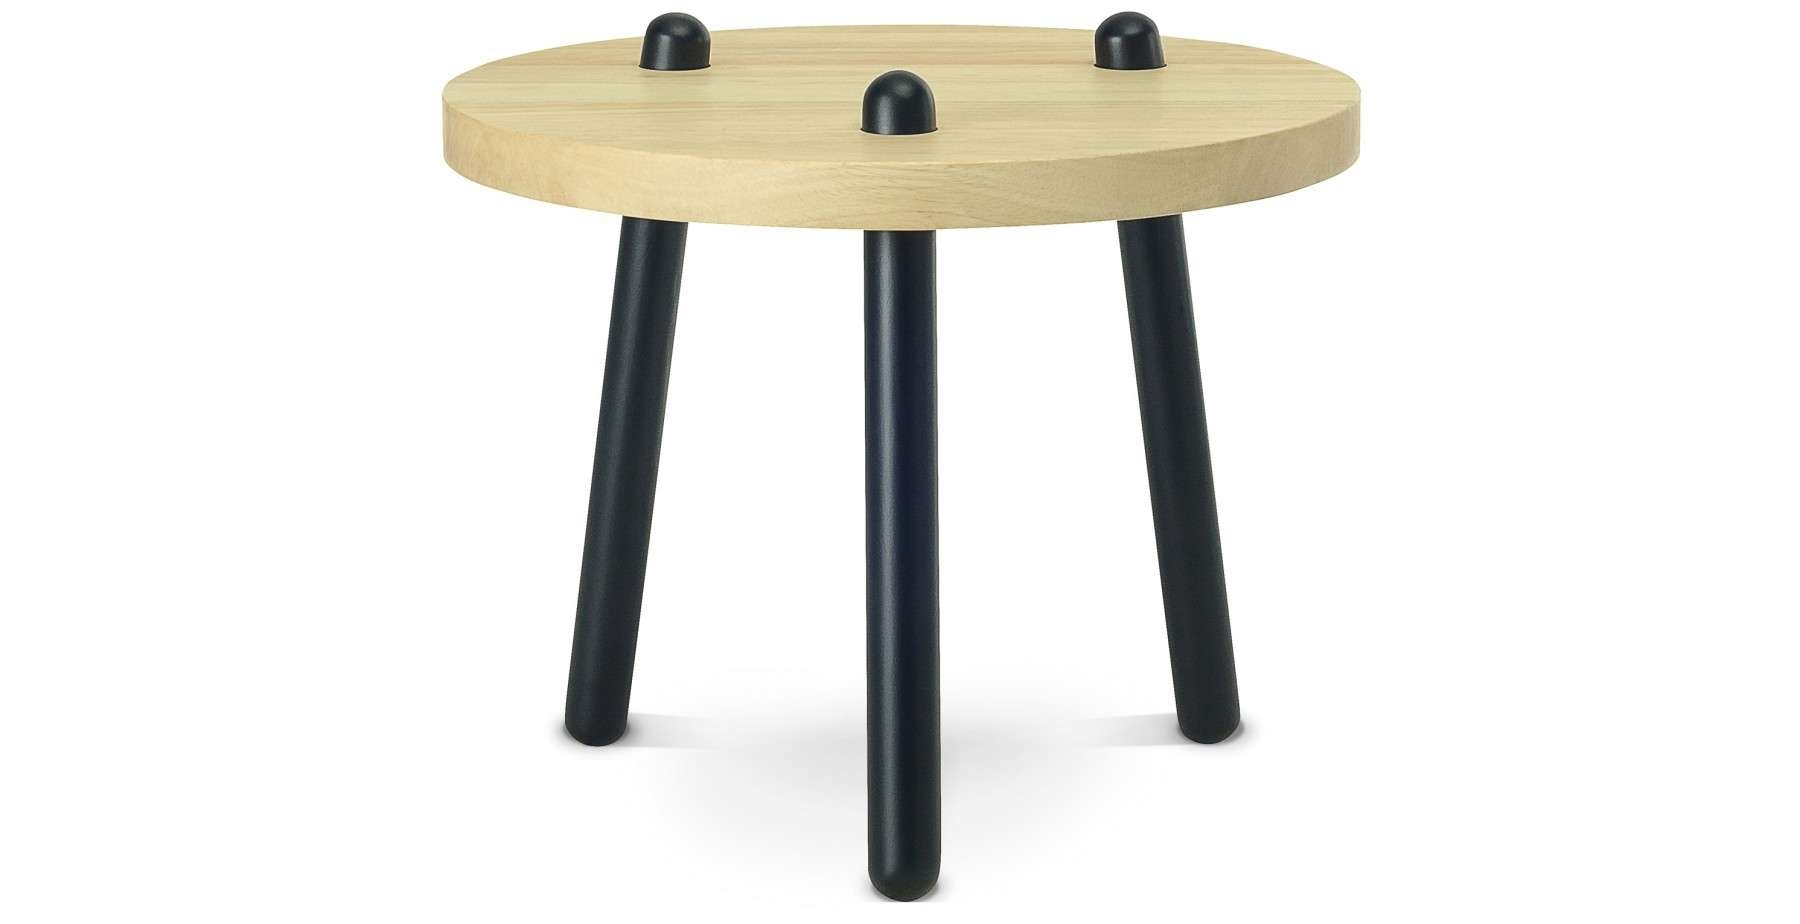 Recent High Coffee Tables Intended For Kimi High Coffee Table, Oak Fern & Grey (View 16 of 20)